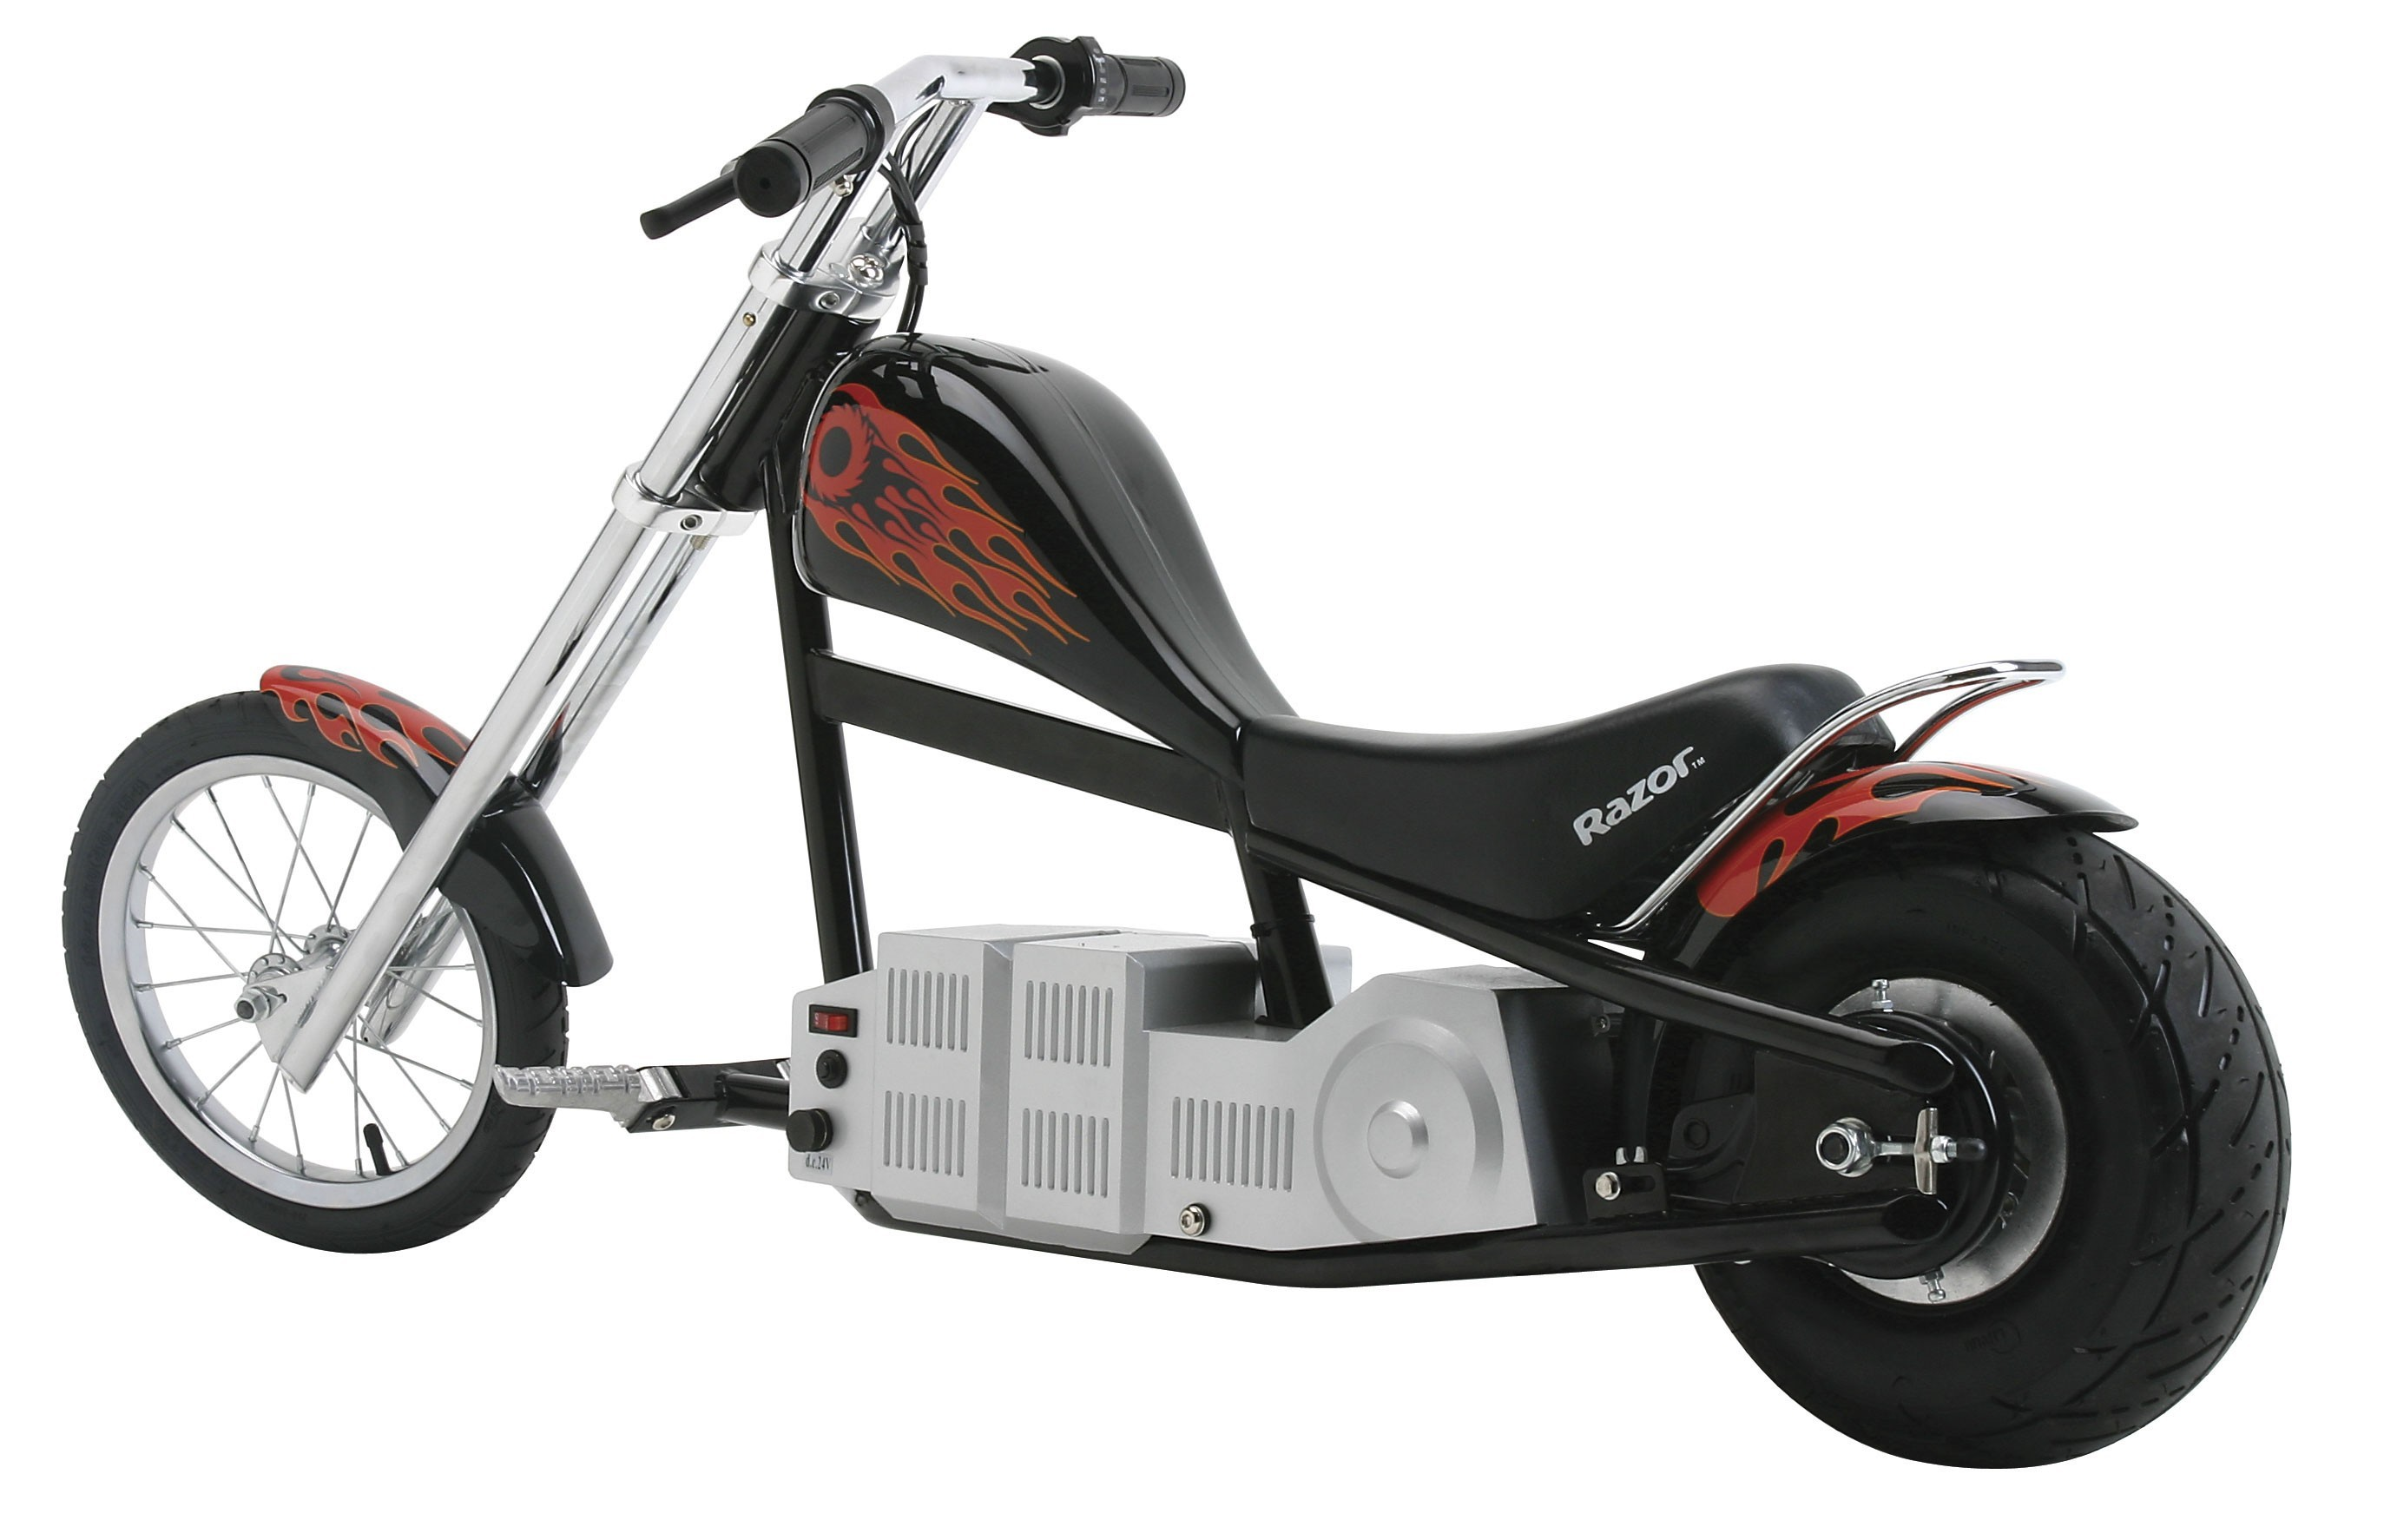 Picture of Recalled Motorcycle